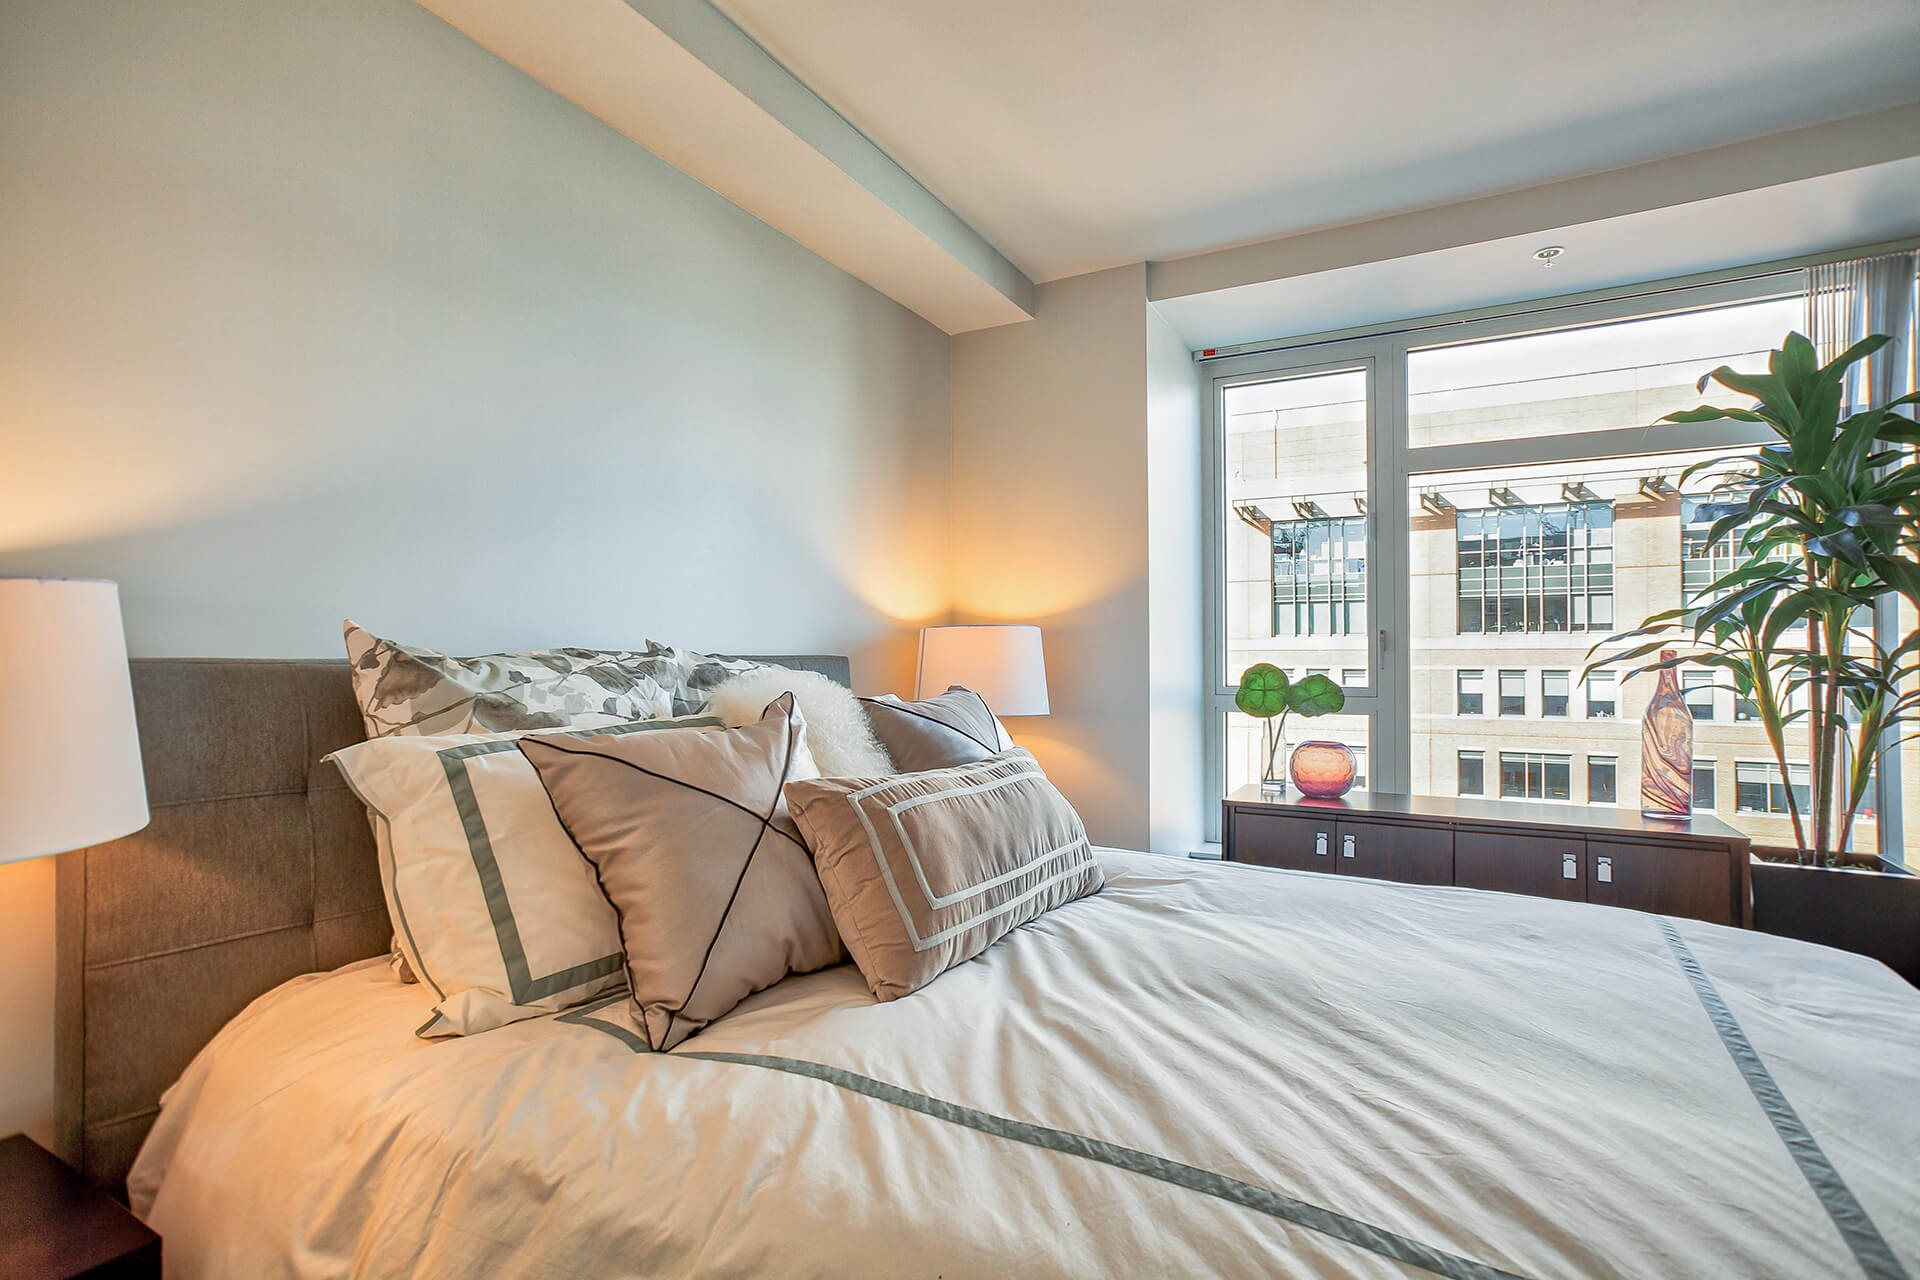 High ceilings floorplan at Waterside Place by Windsor, 505 Congress St, MA